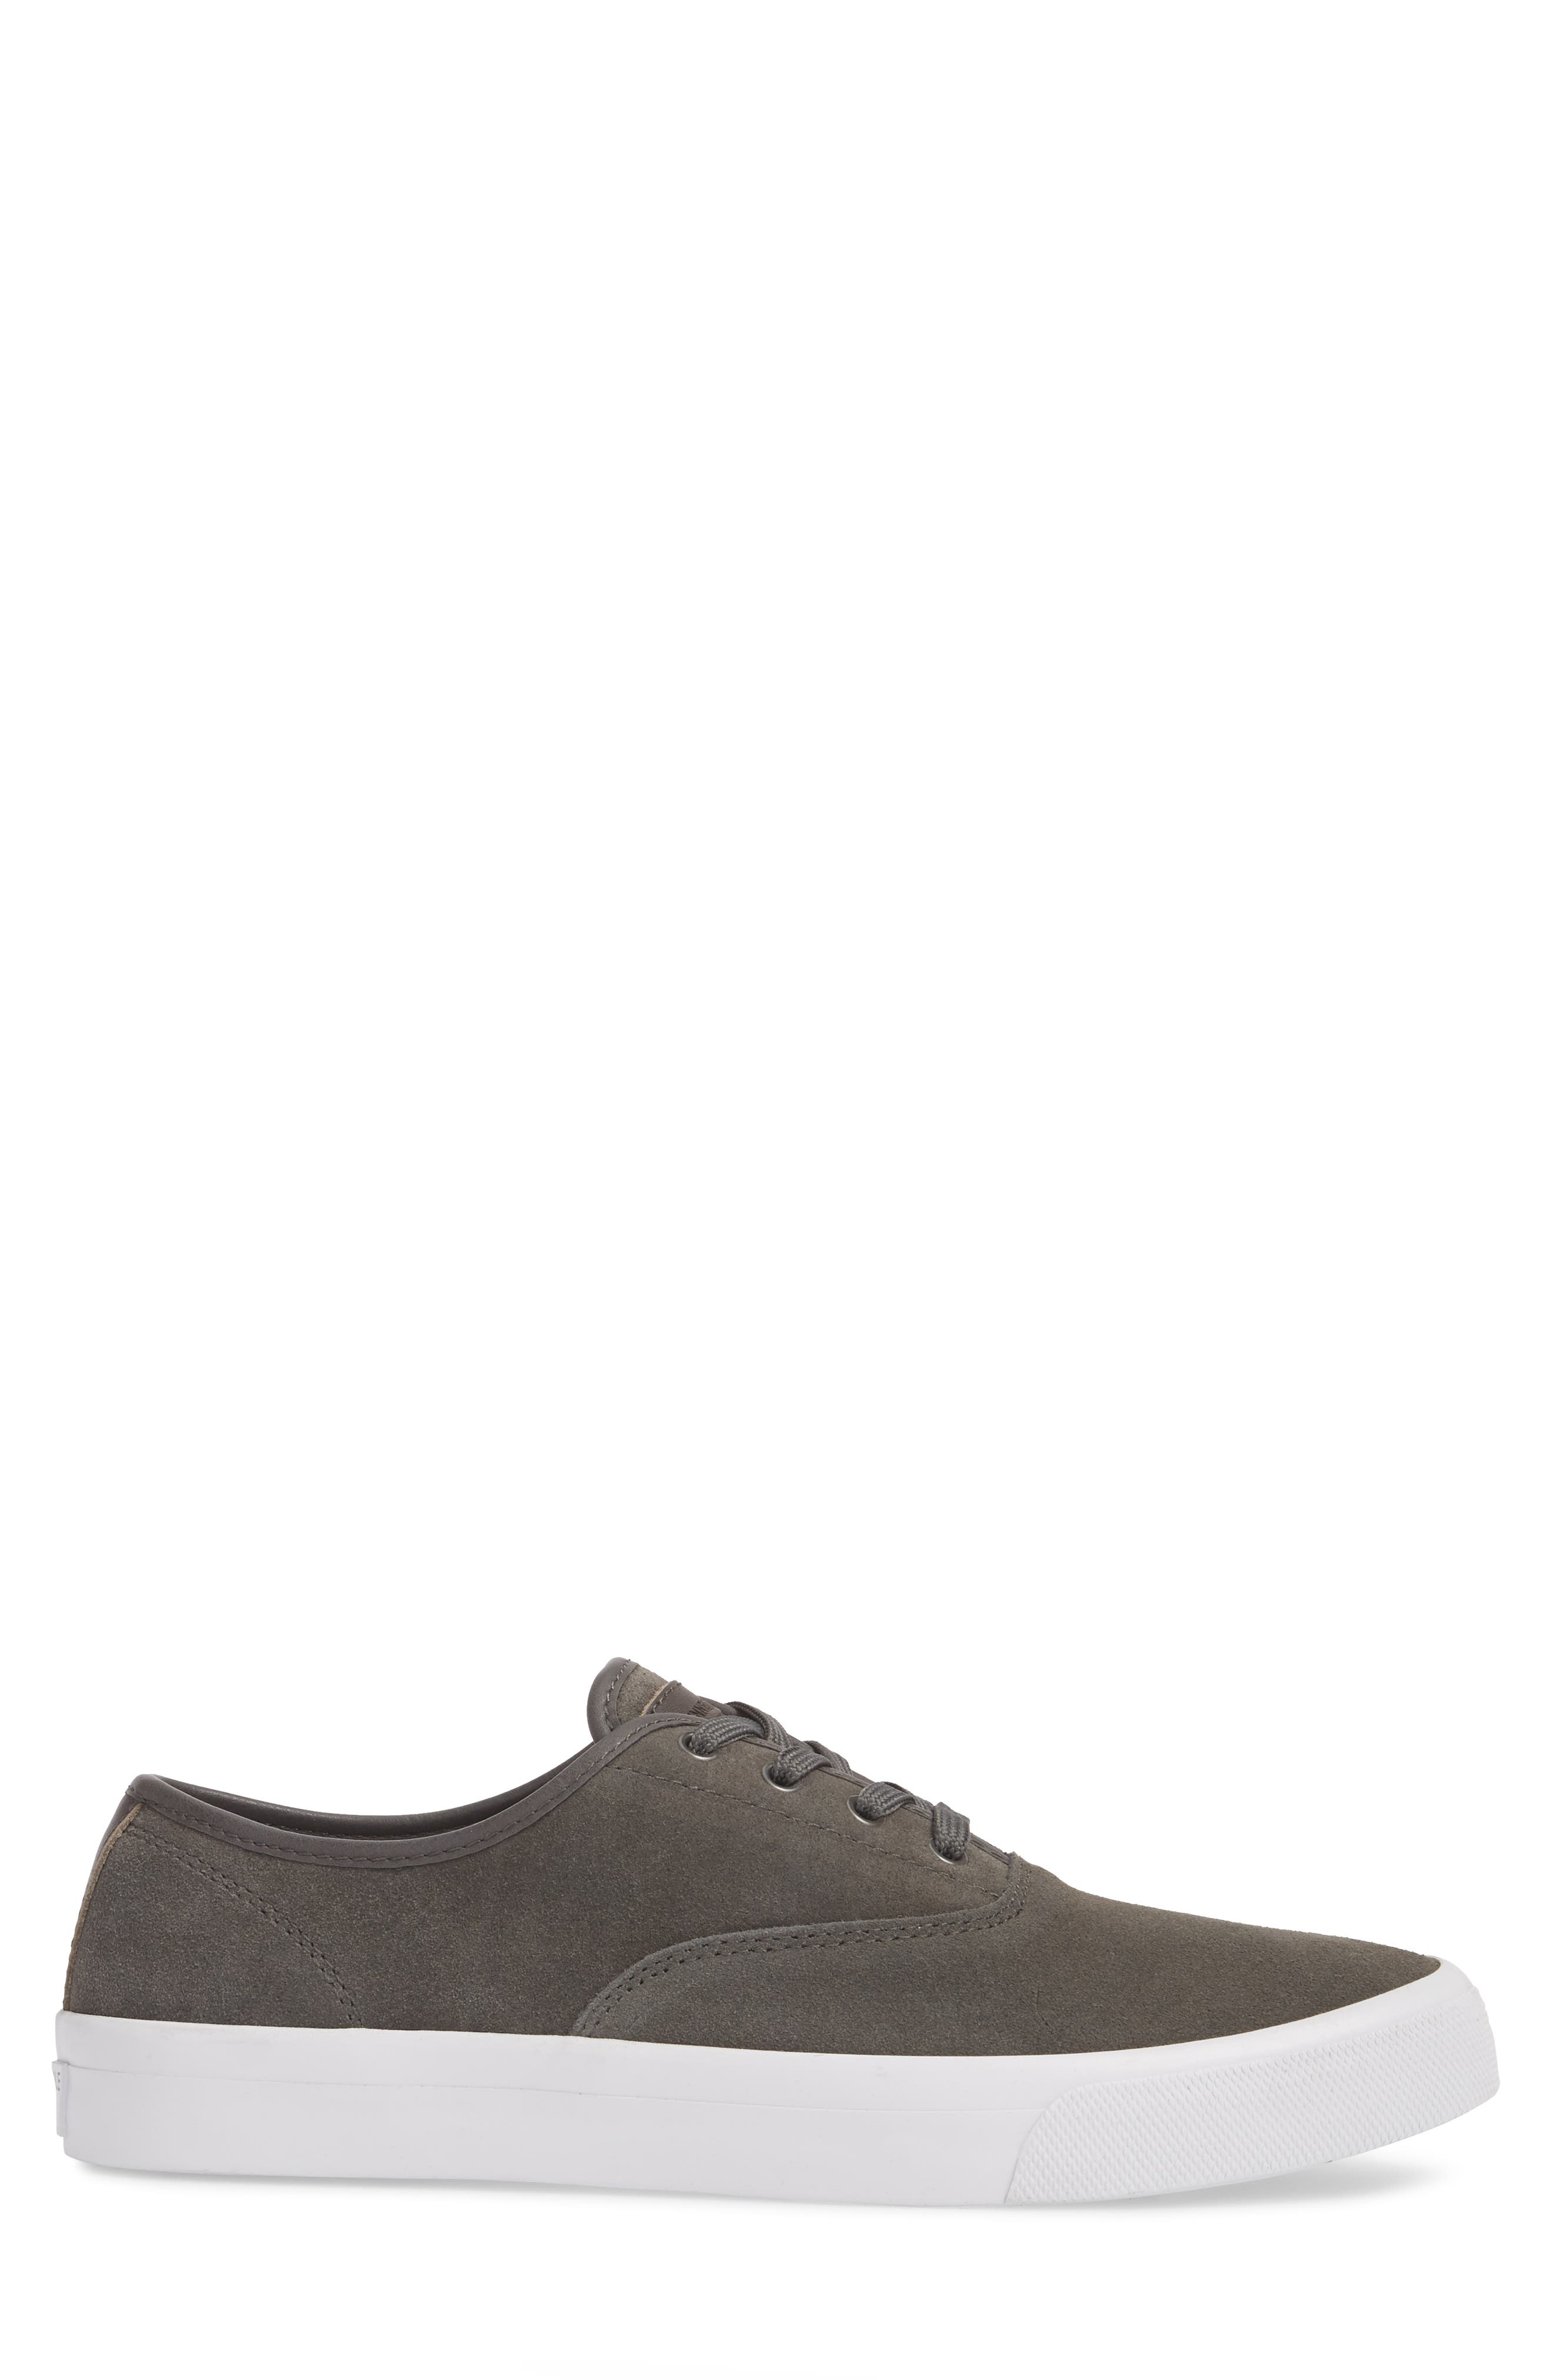 KENNETH COLE NEW YORK, Toor Low Top Sneaker, Alternate thumbnail 3, color, GREY COMBO SUEDE